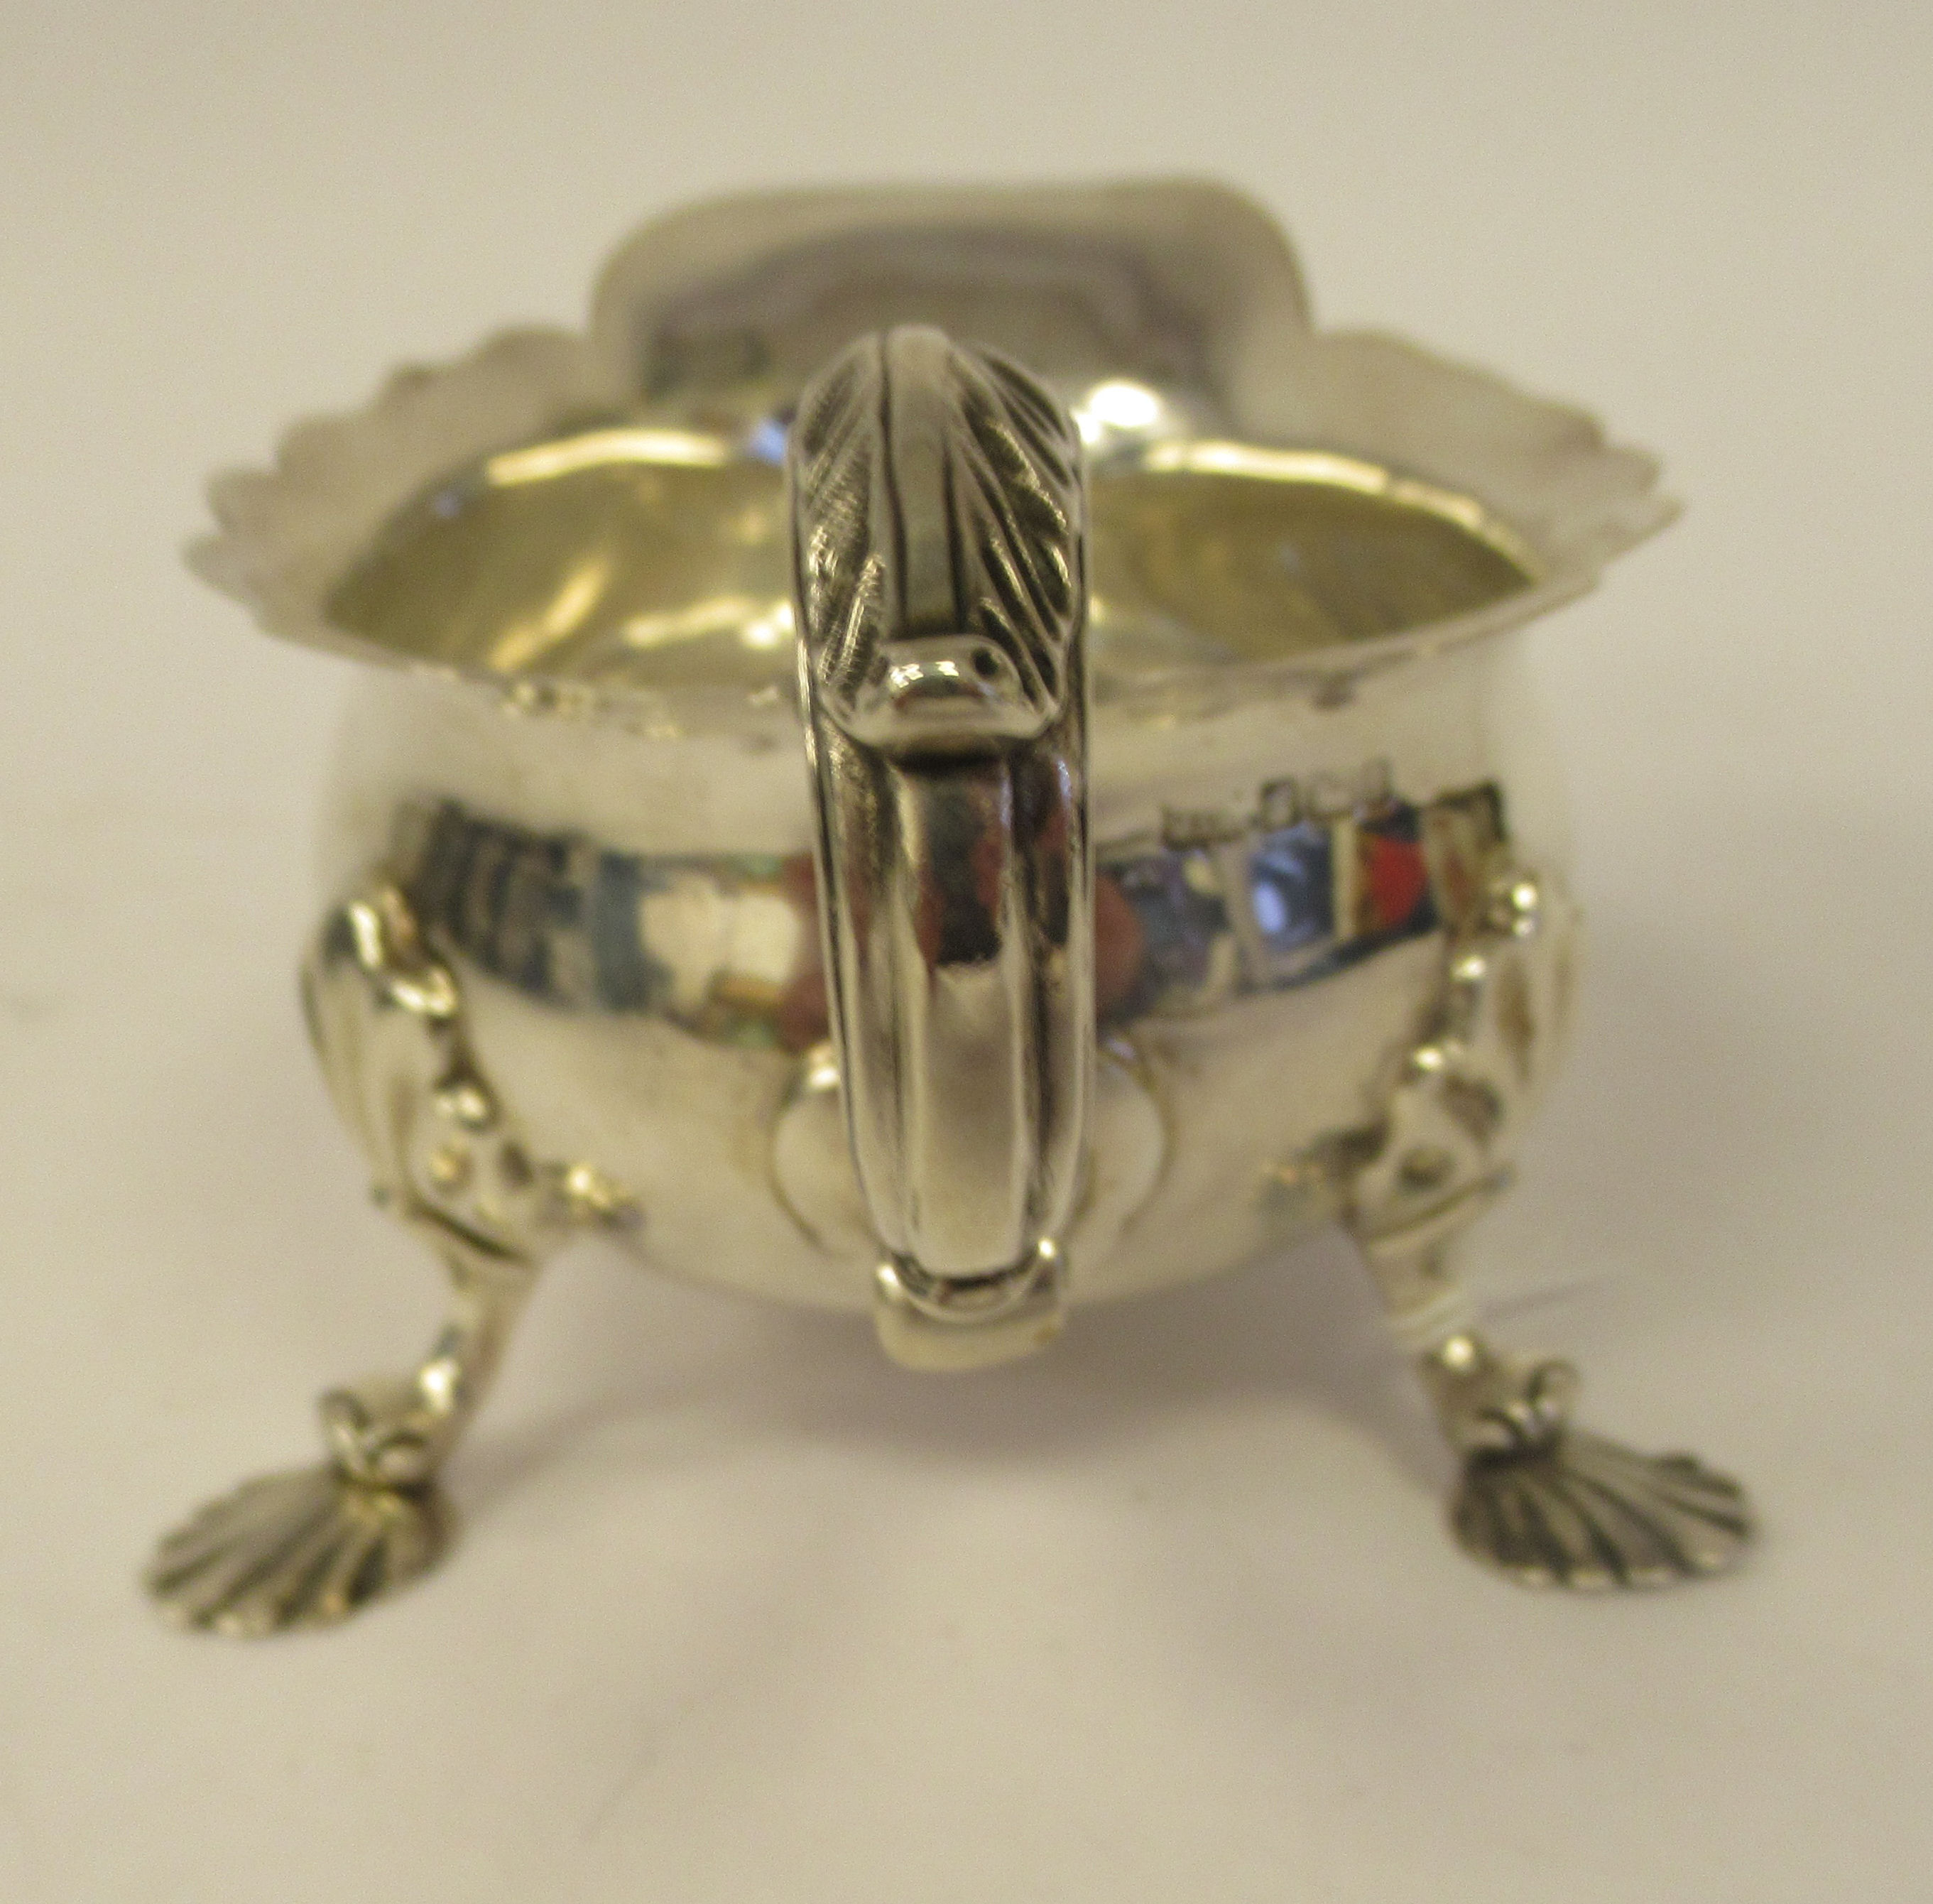 An Edwardian silver sauce boat with a decoratively cut, flared, wavy rim, a shell and acanthus, C- - Image 4 of 9